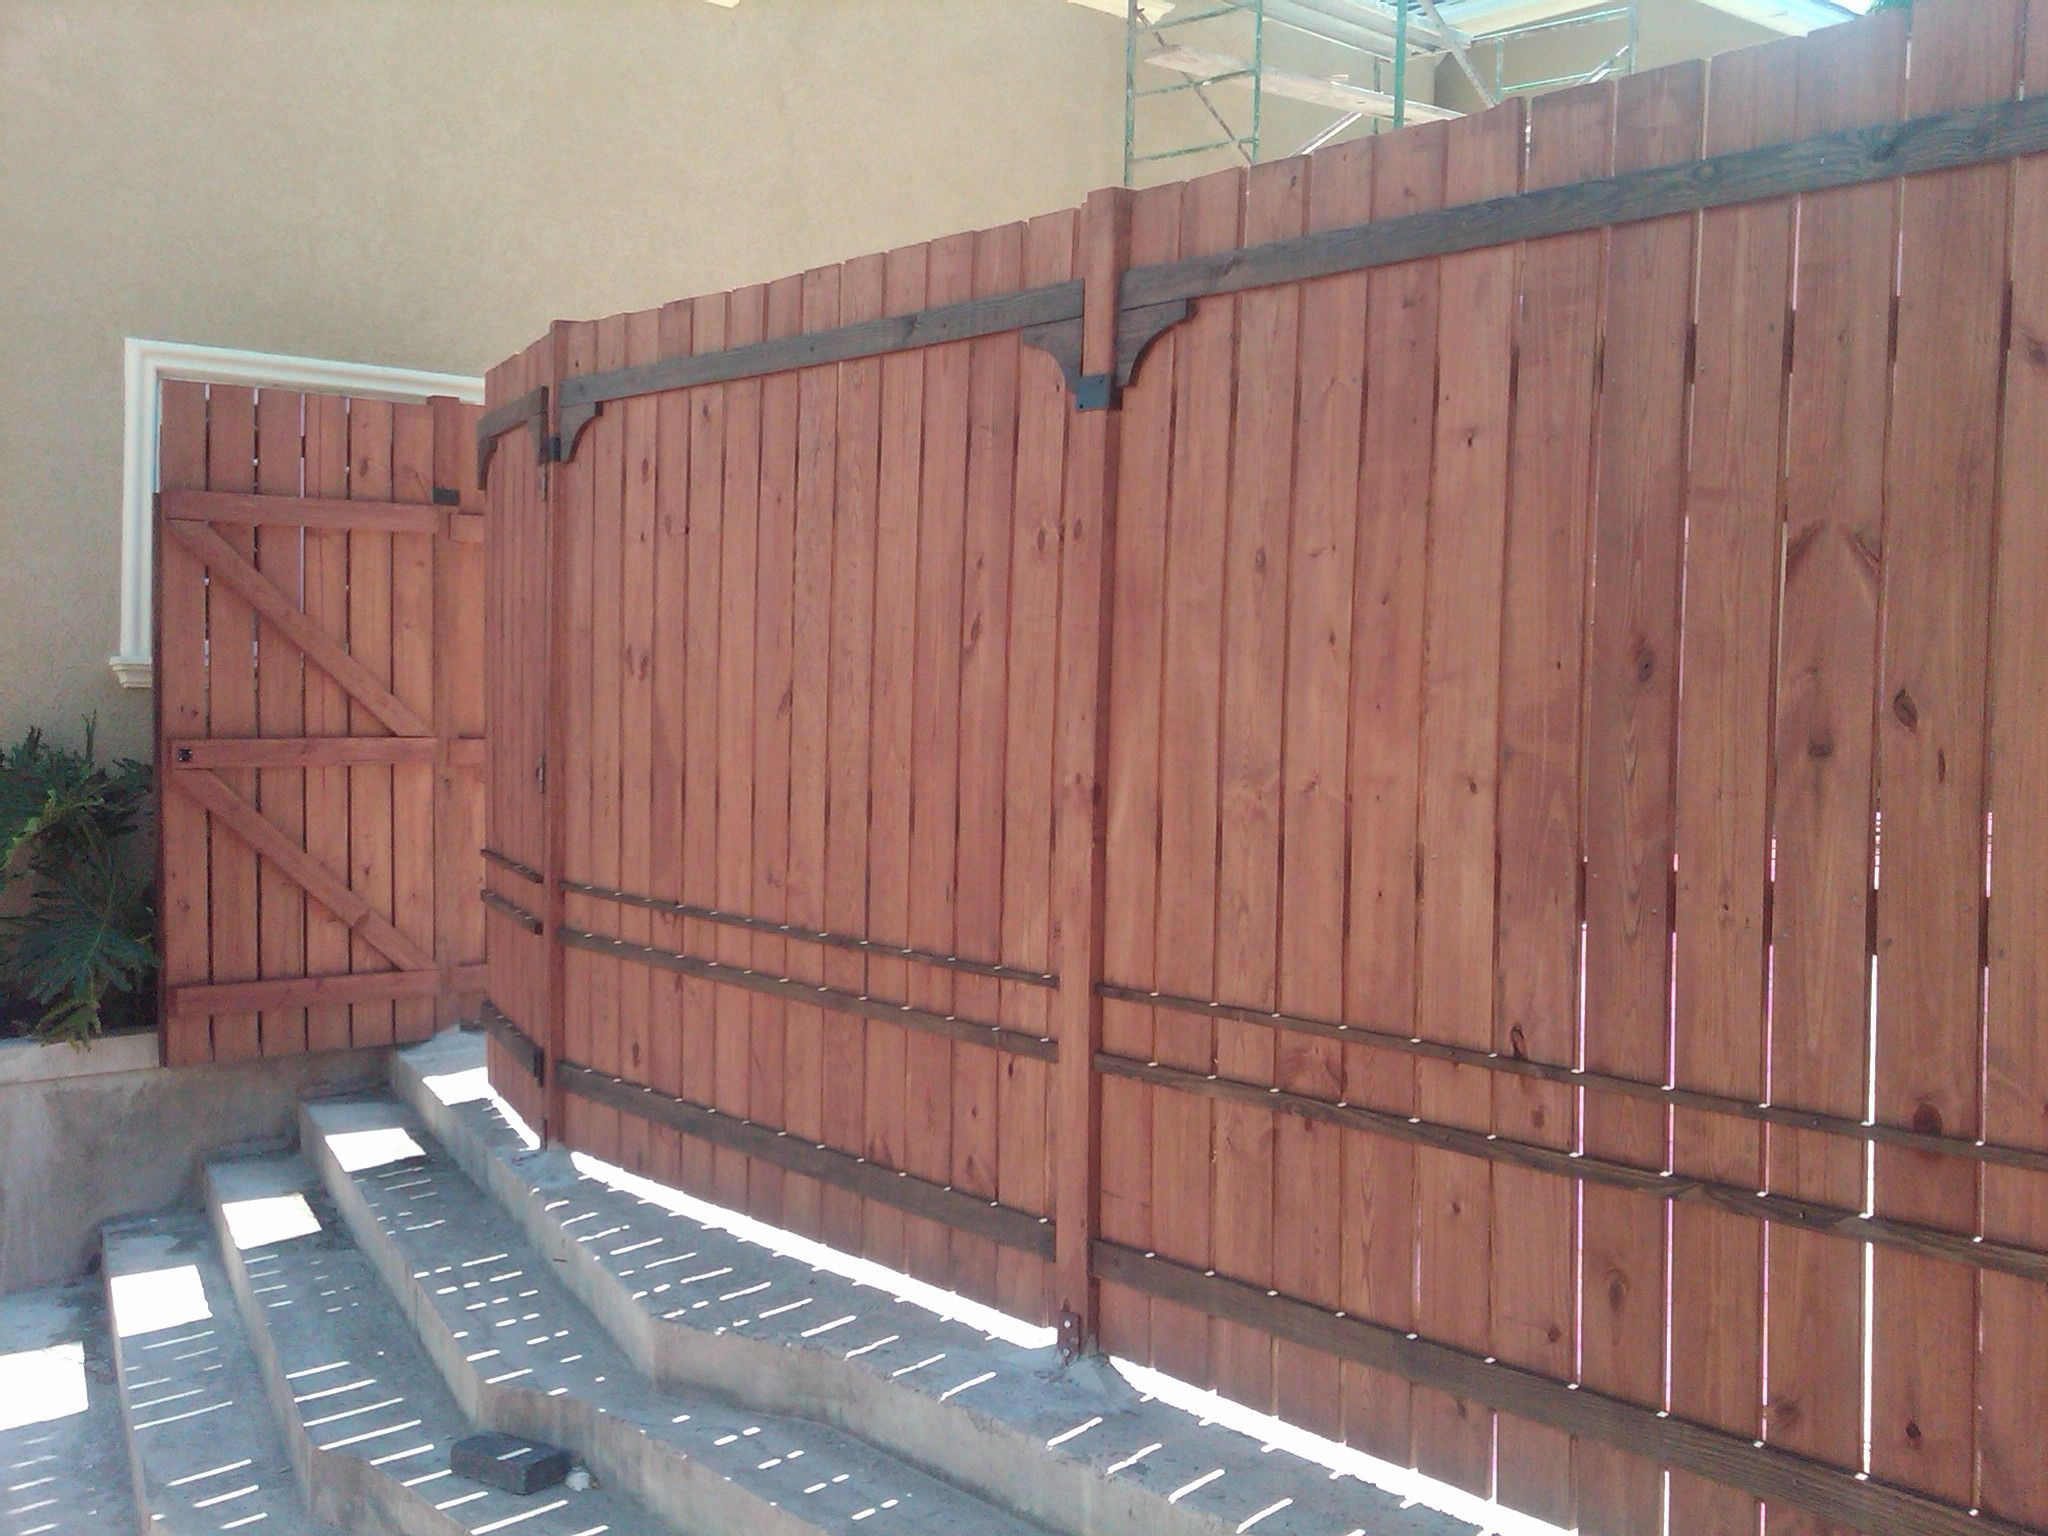 Wooden perimeter fence and entrance gate. Entrance gates